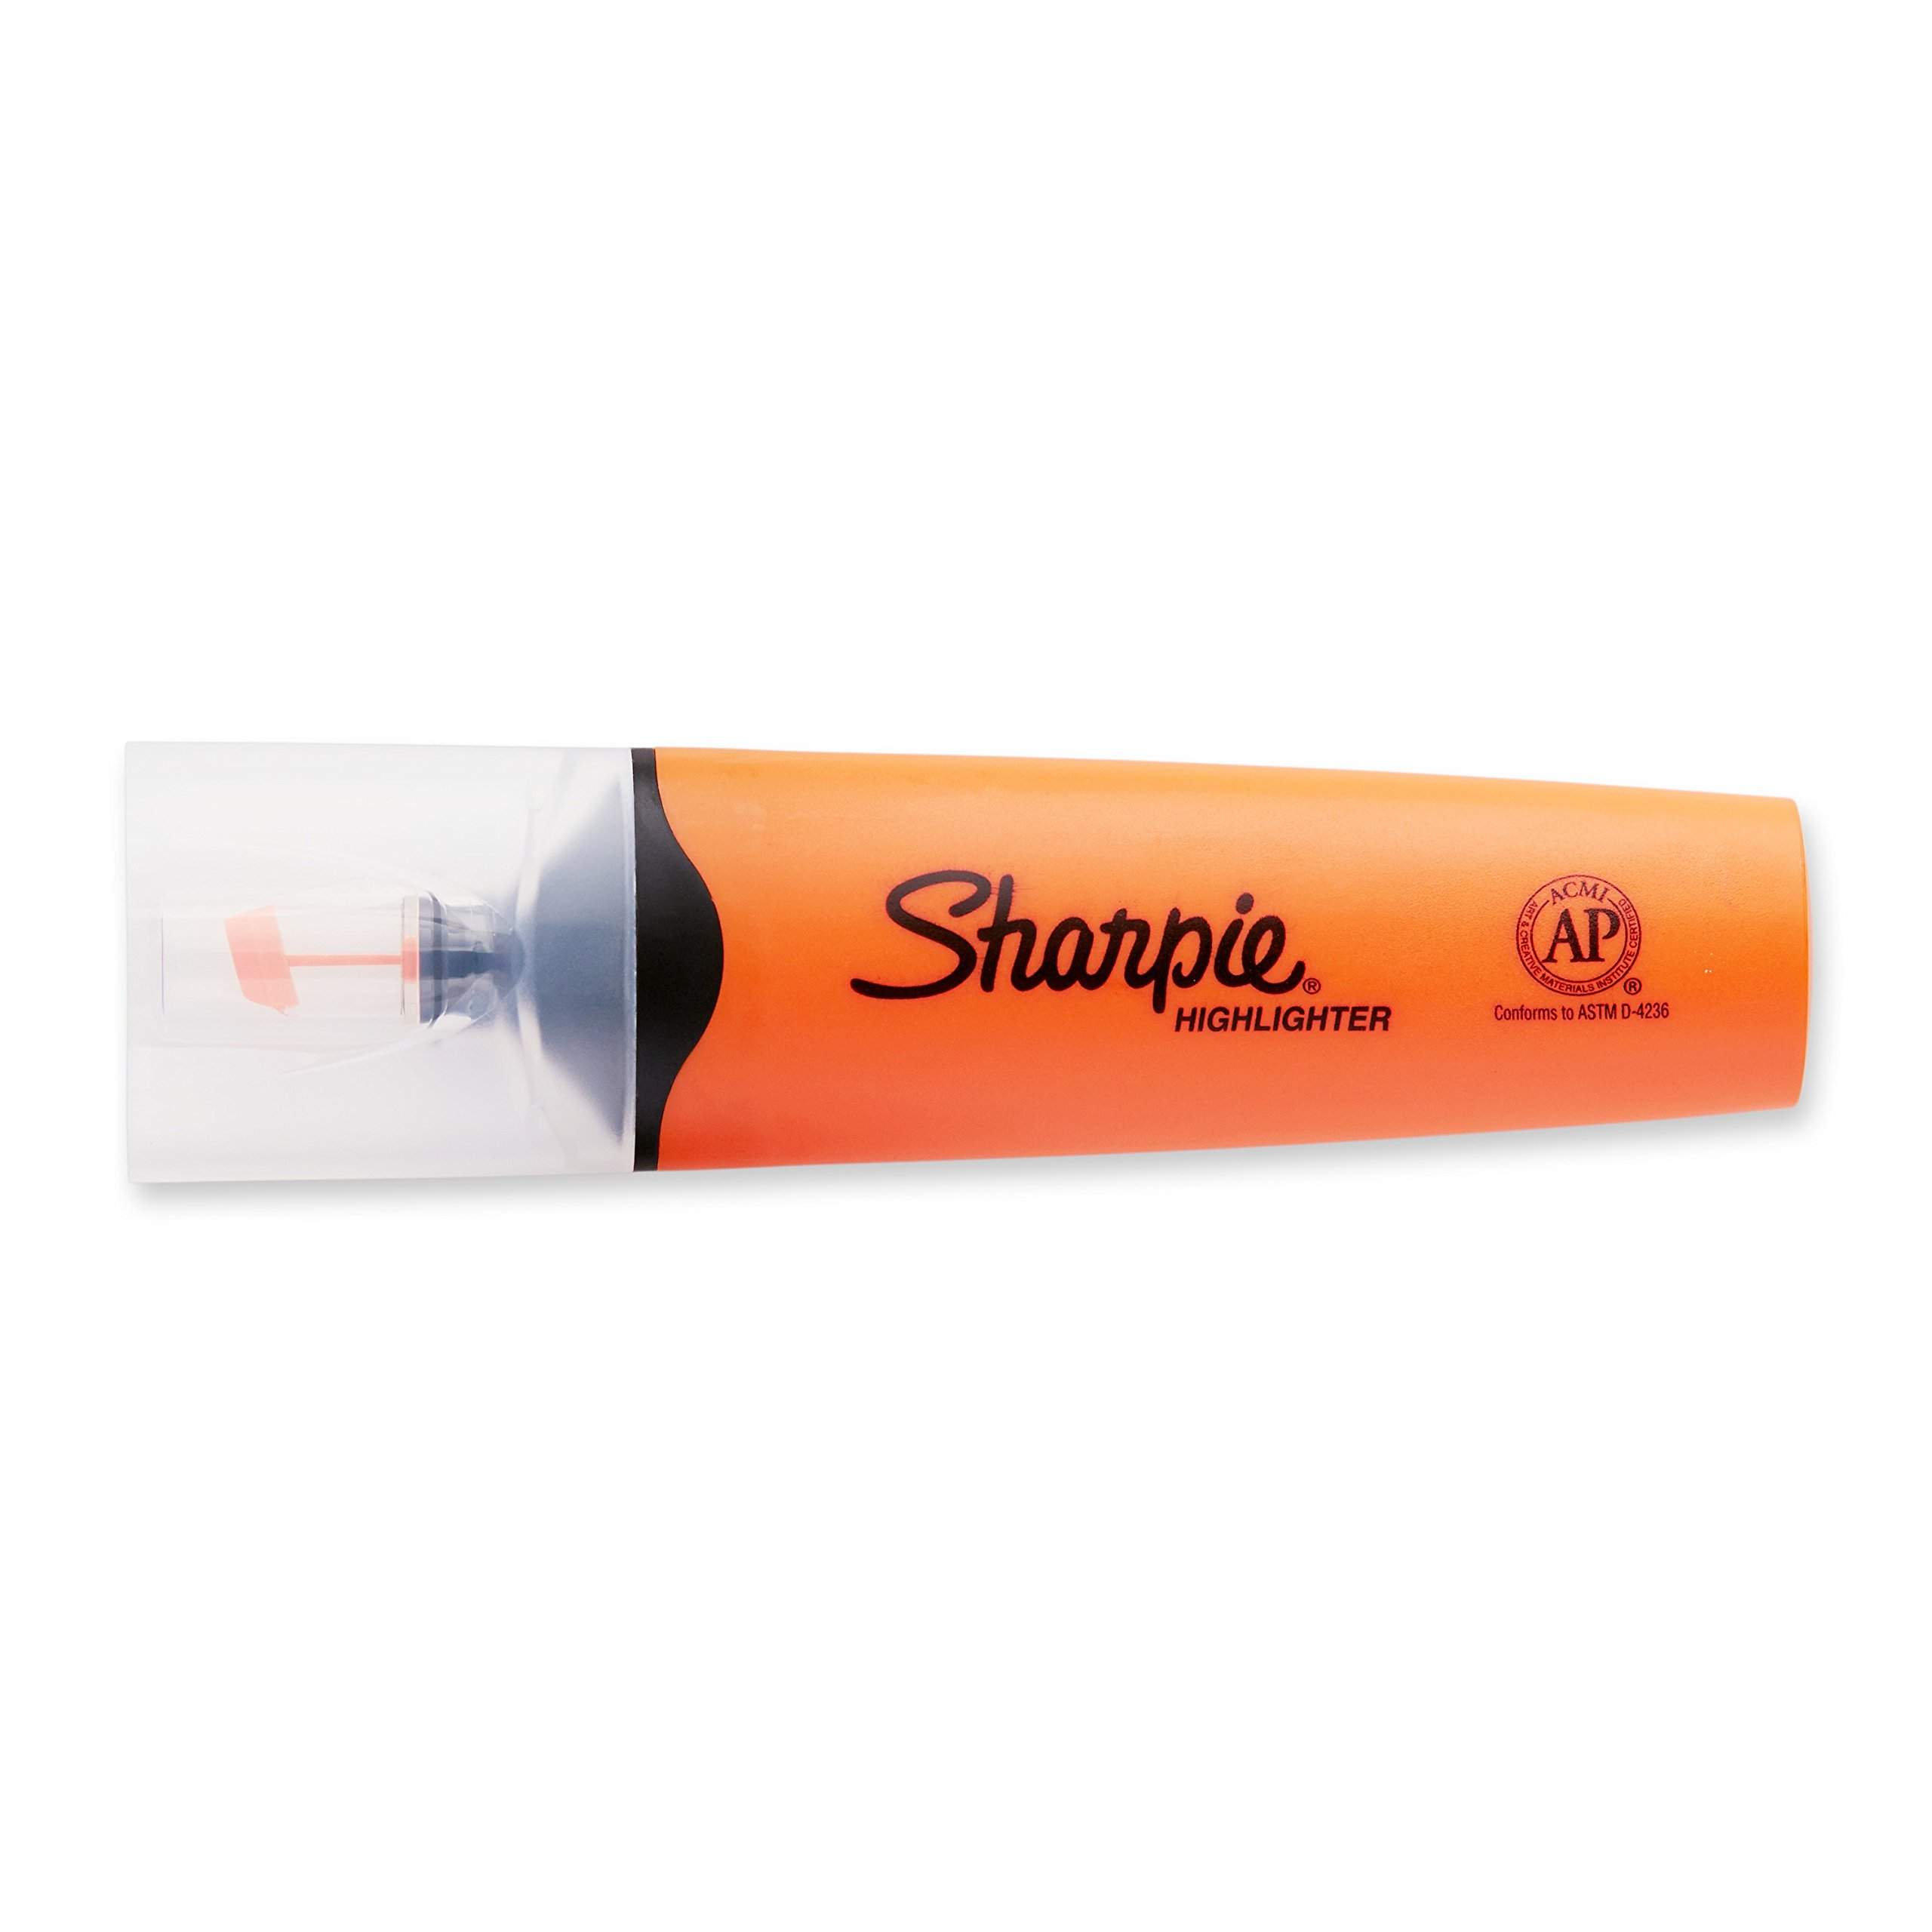 Sharpie Clear View Highlighter, Chisel Tip, 12-Pack, Orange (1897849) by Sharpie (Image #5)